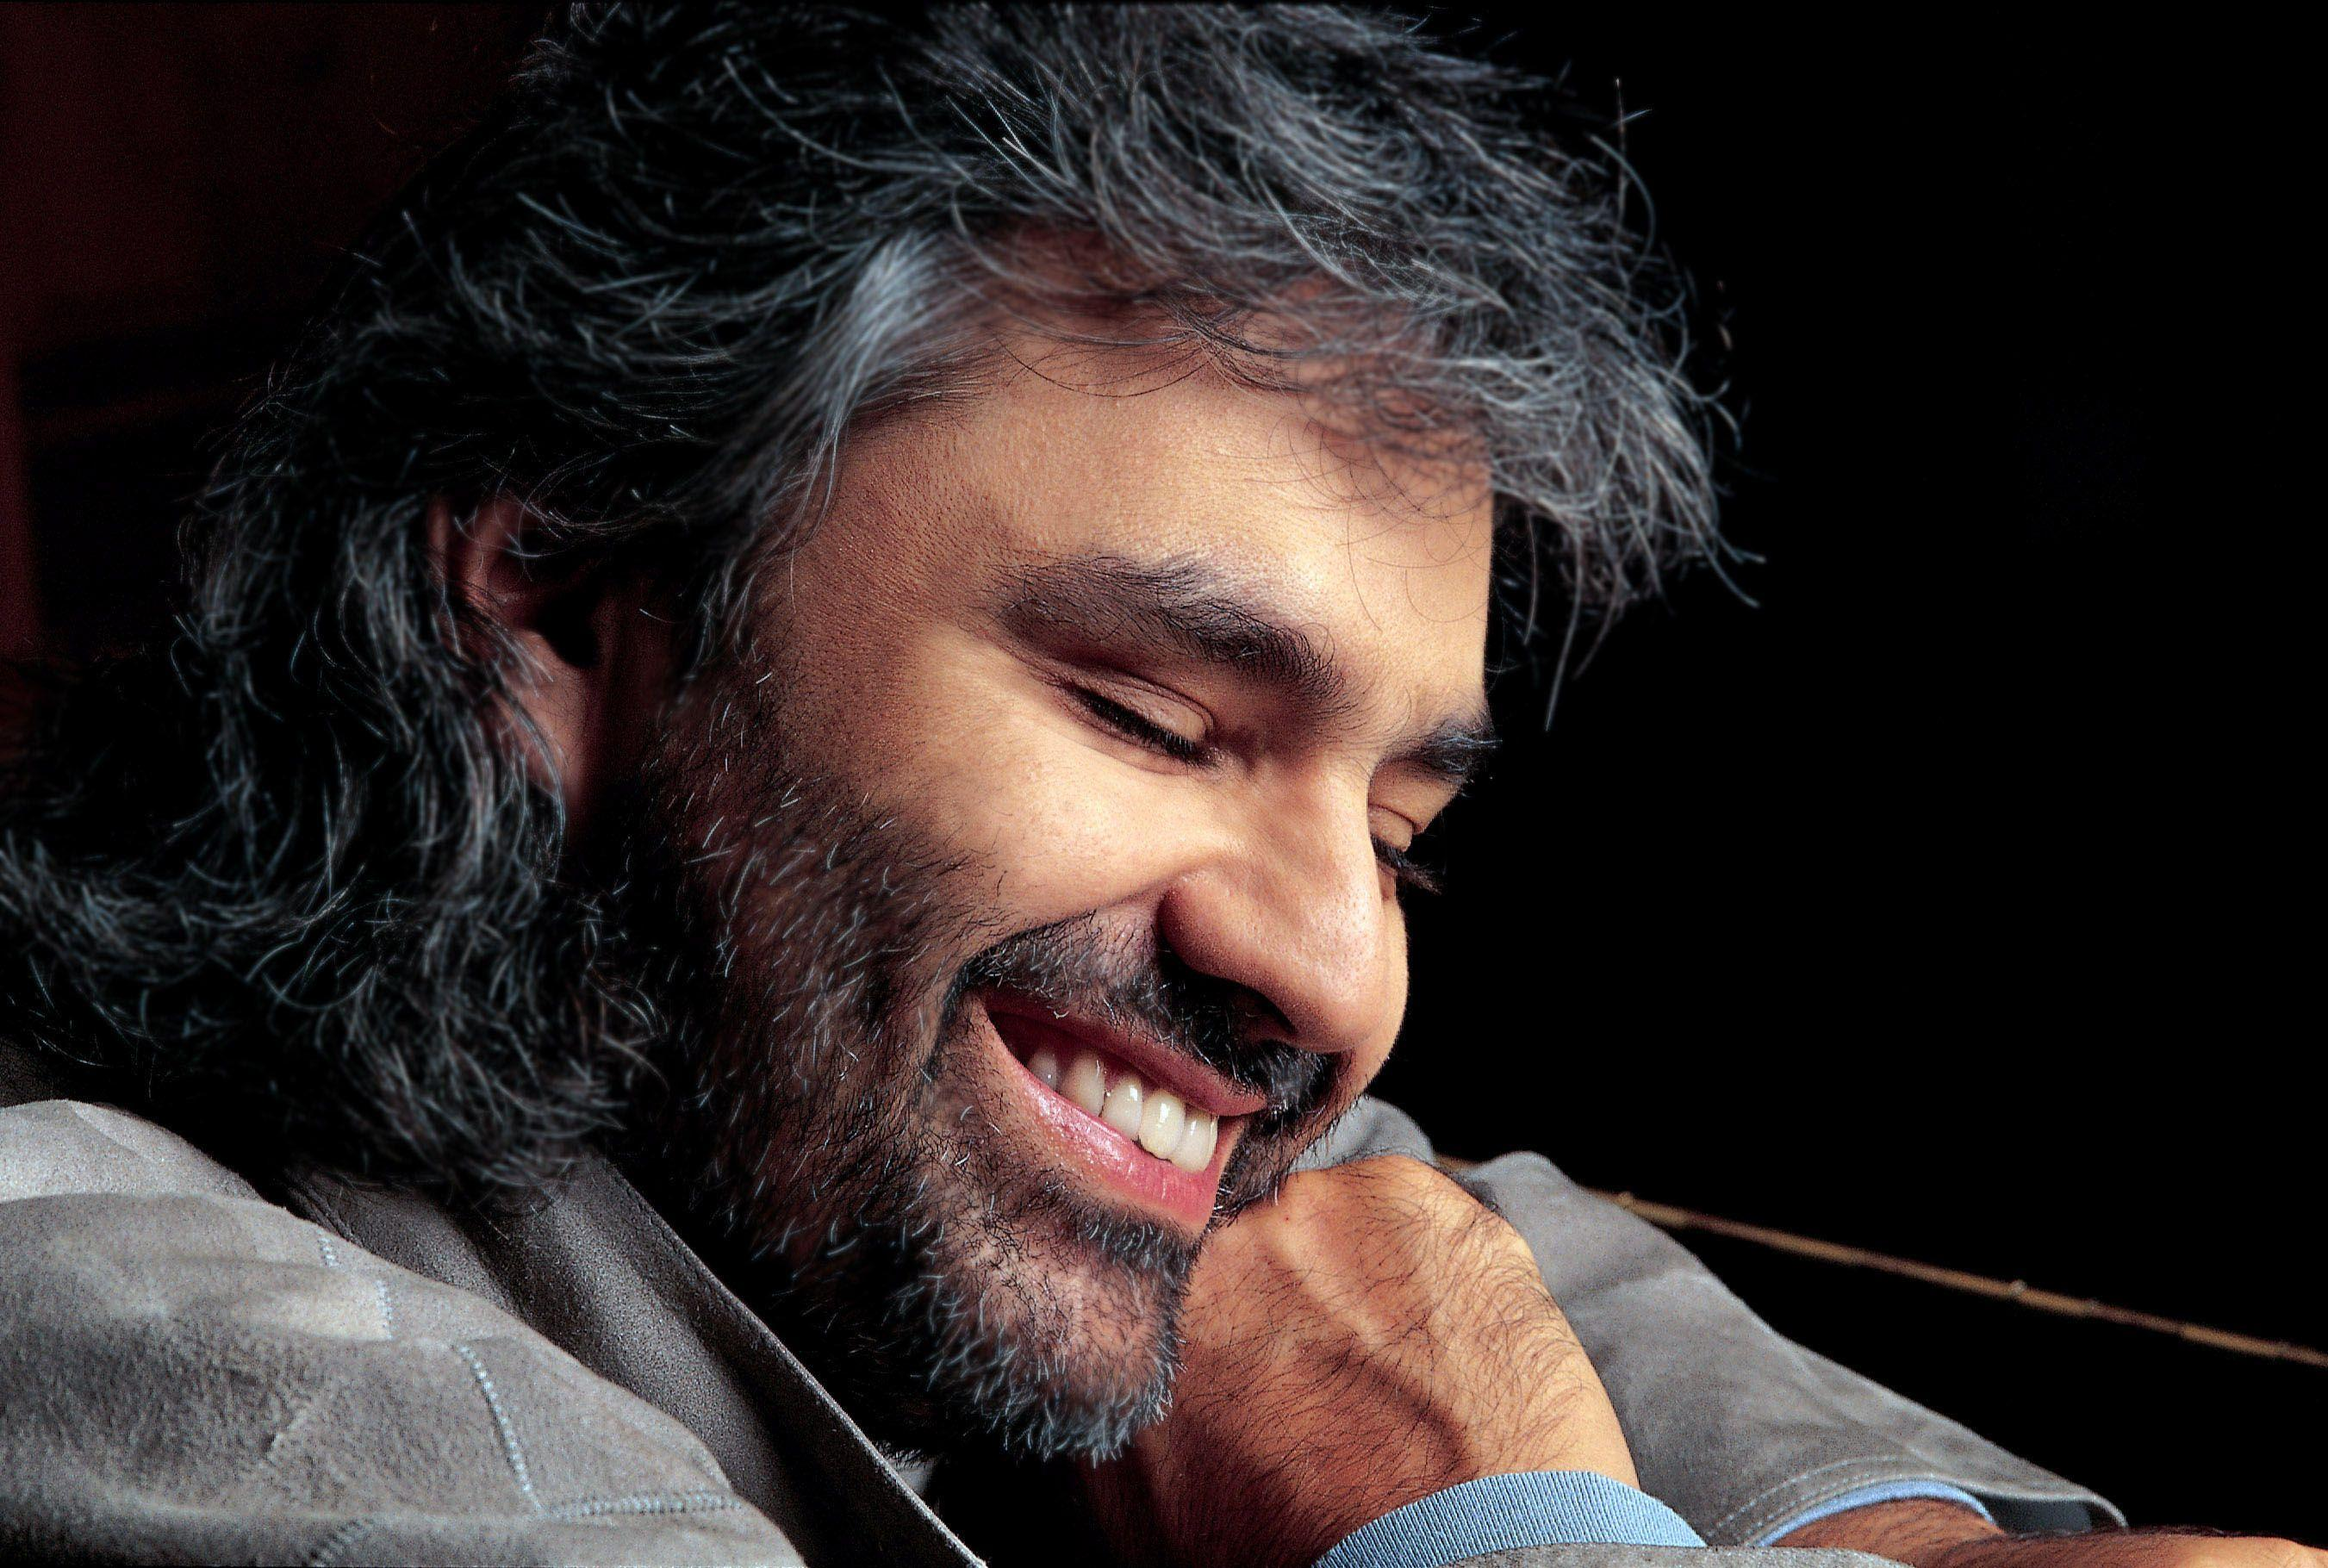 Andrea Bocelli image Andrea Bocelli HD wallpapers and backgrounds